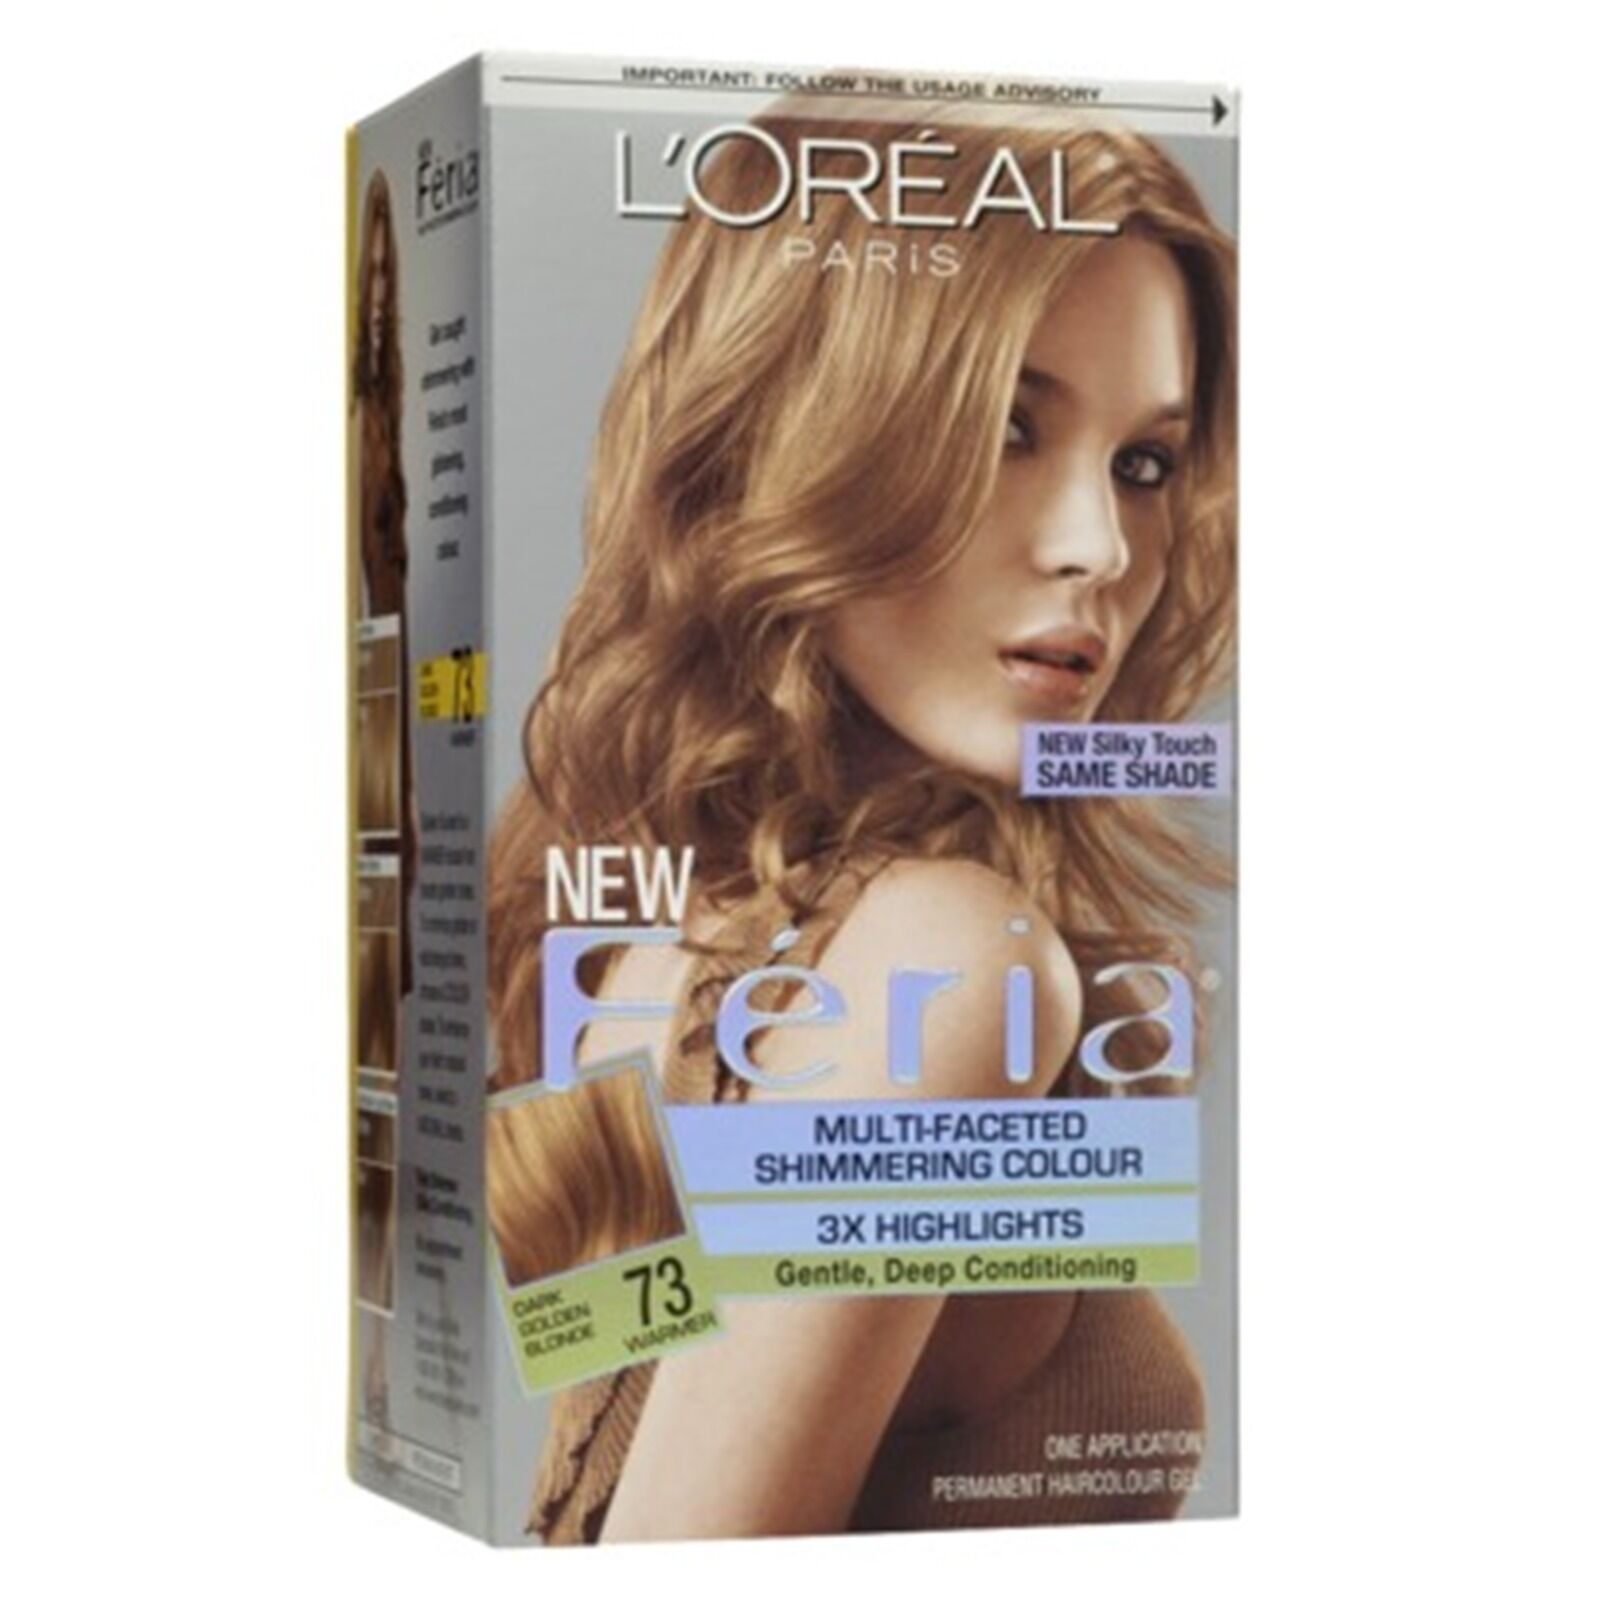 Details about Loreal Feria Hair Color 3X, 73 Dark Golden Blonde - Kit